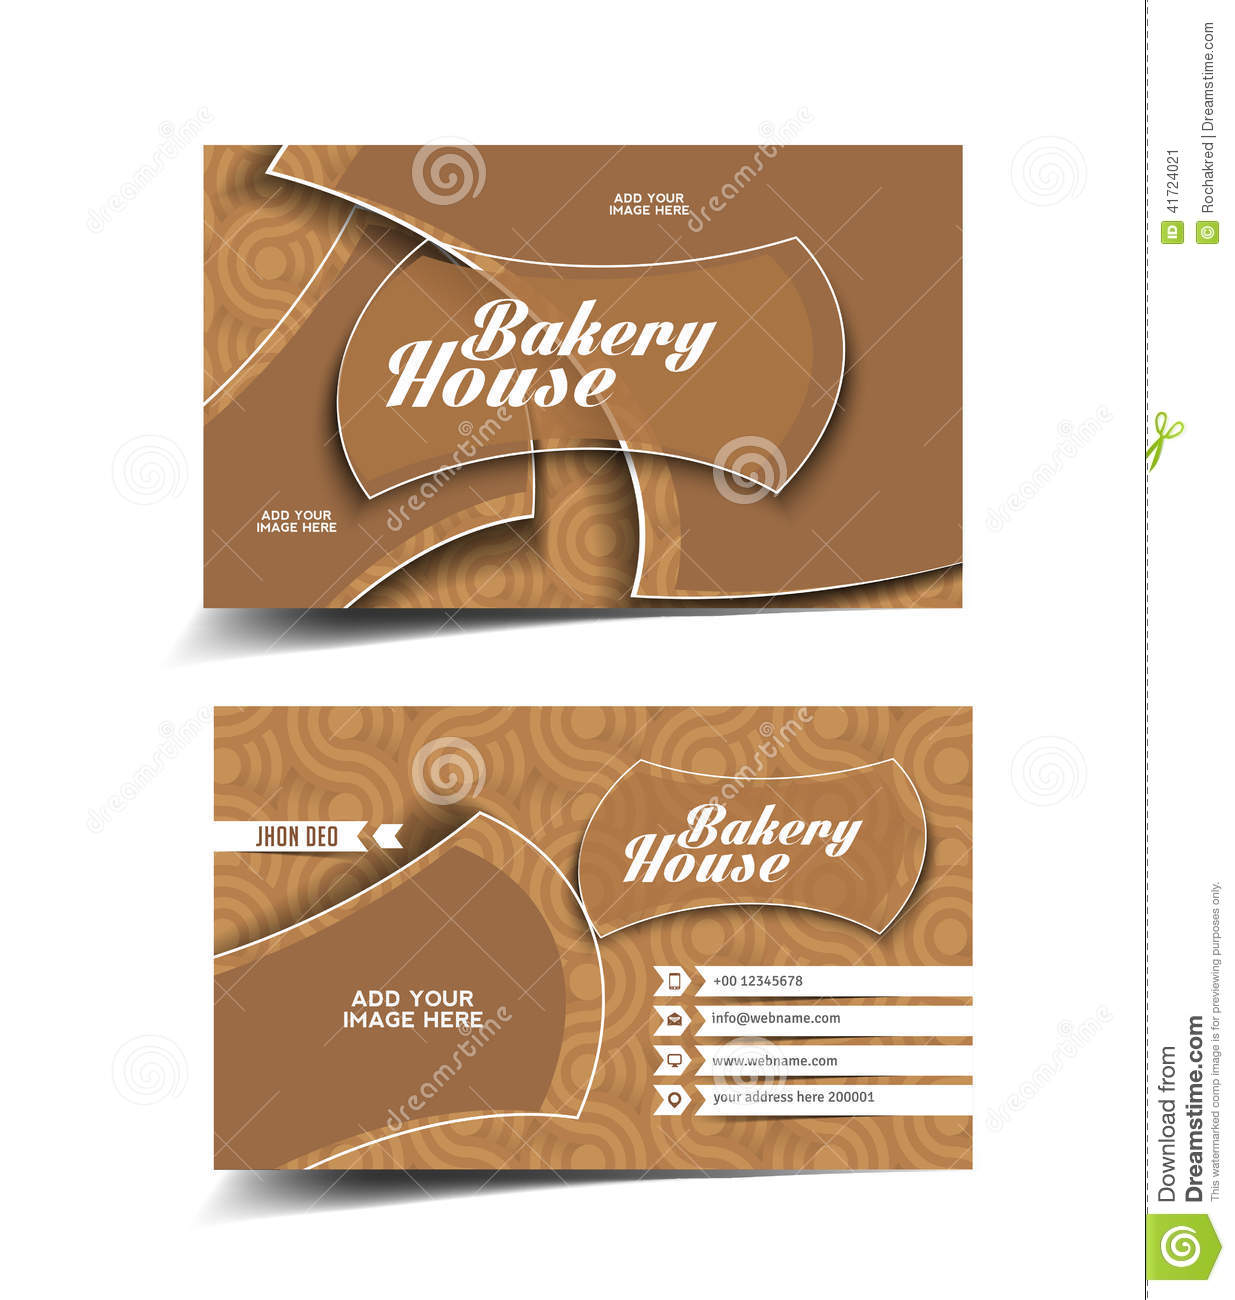 Bakery house business card stock vector illustration of identity bakery house business card colourmoves